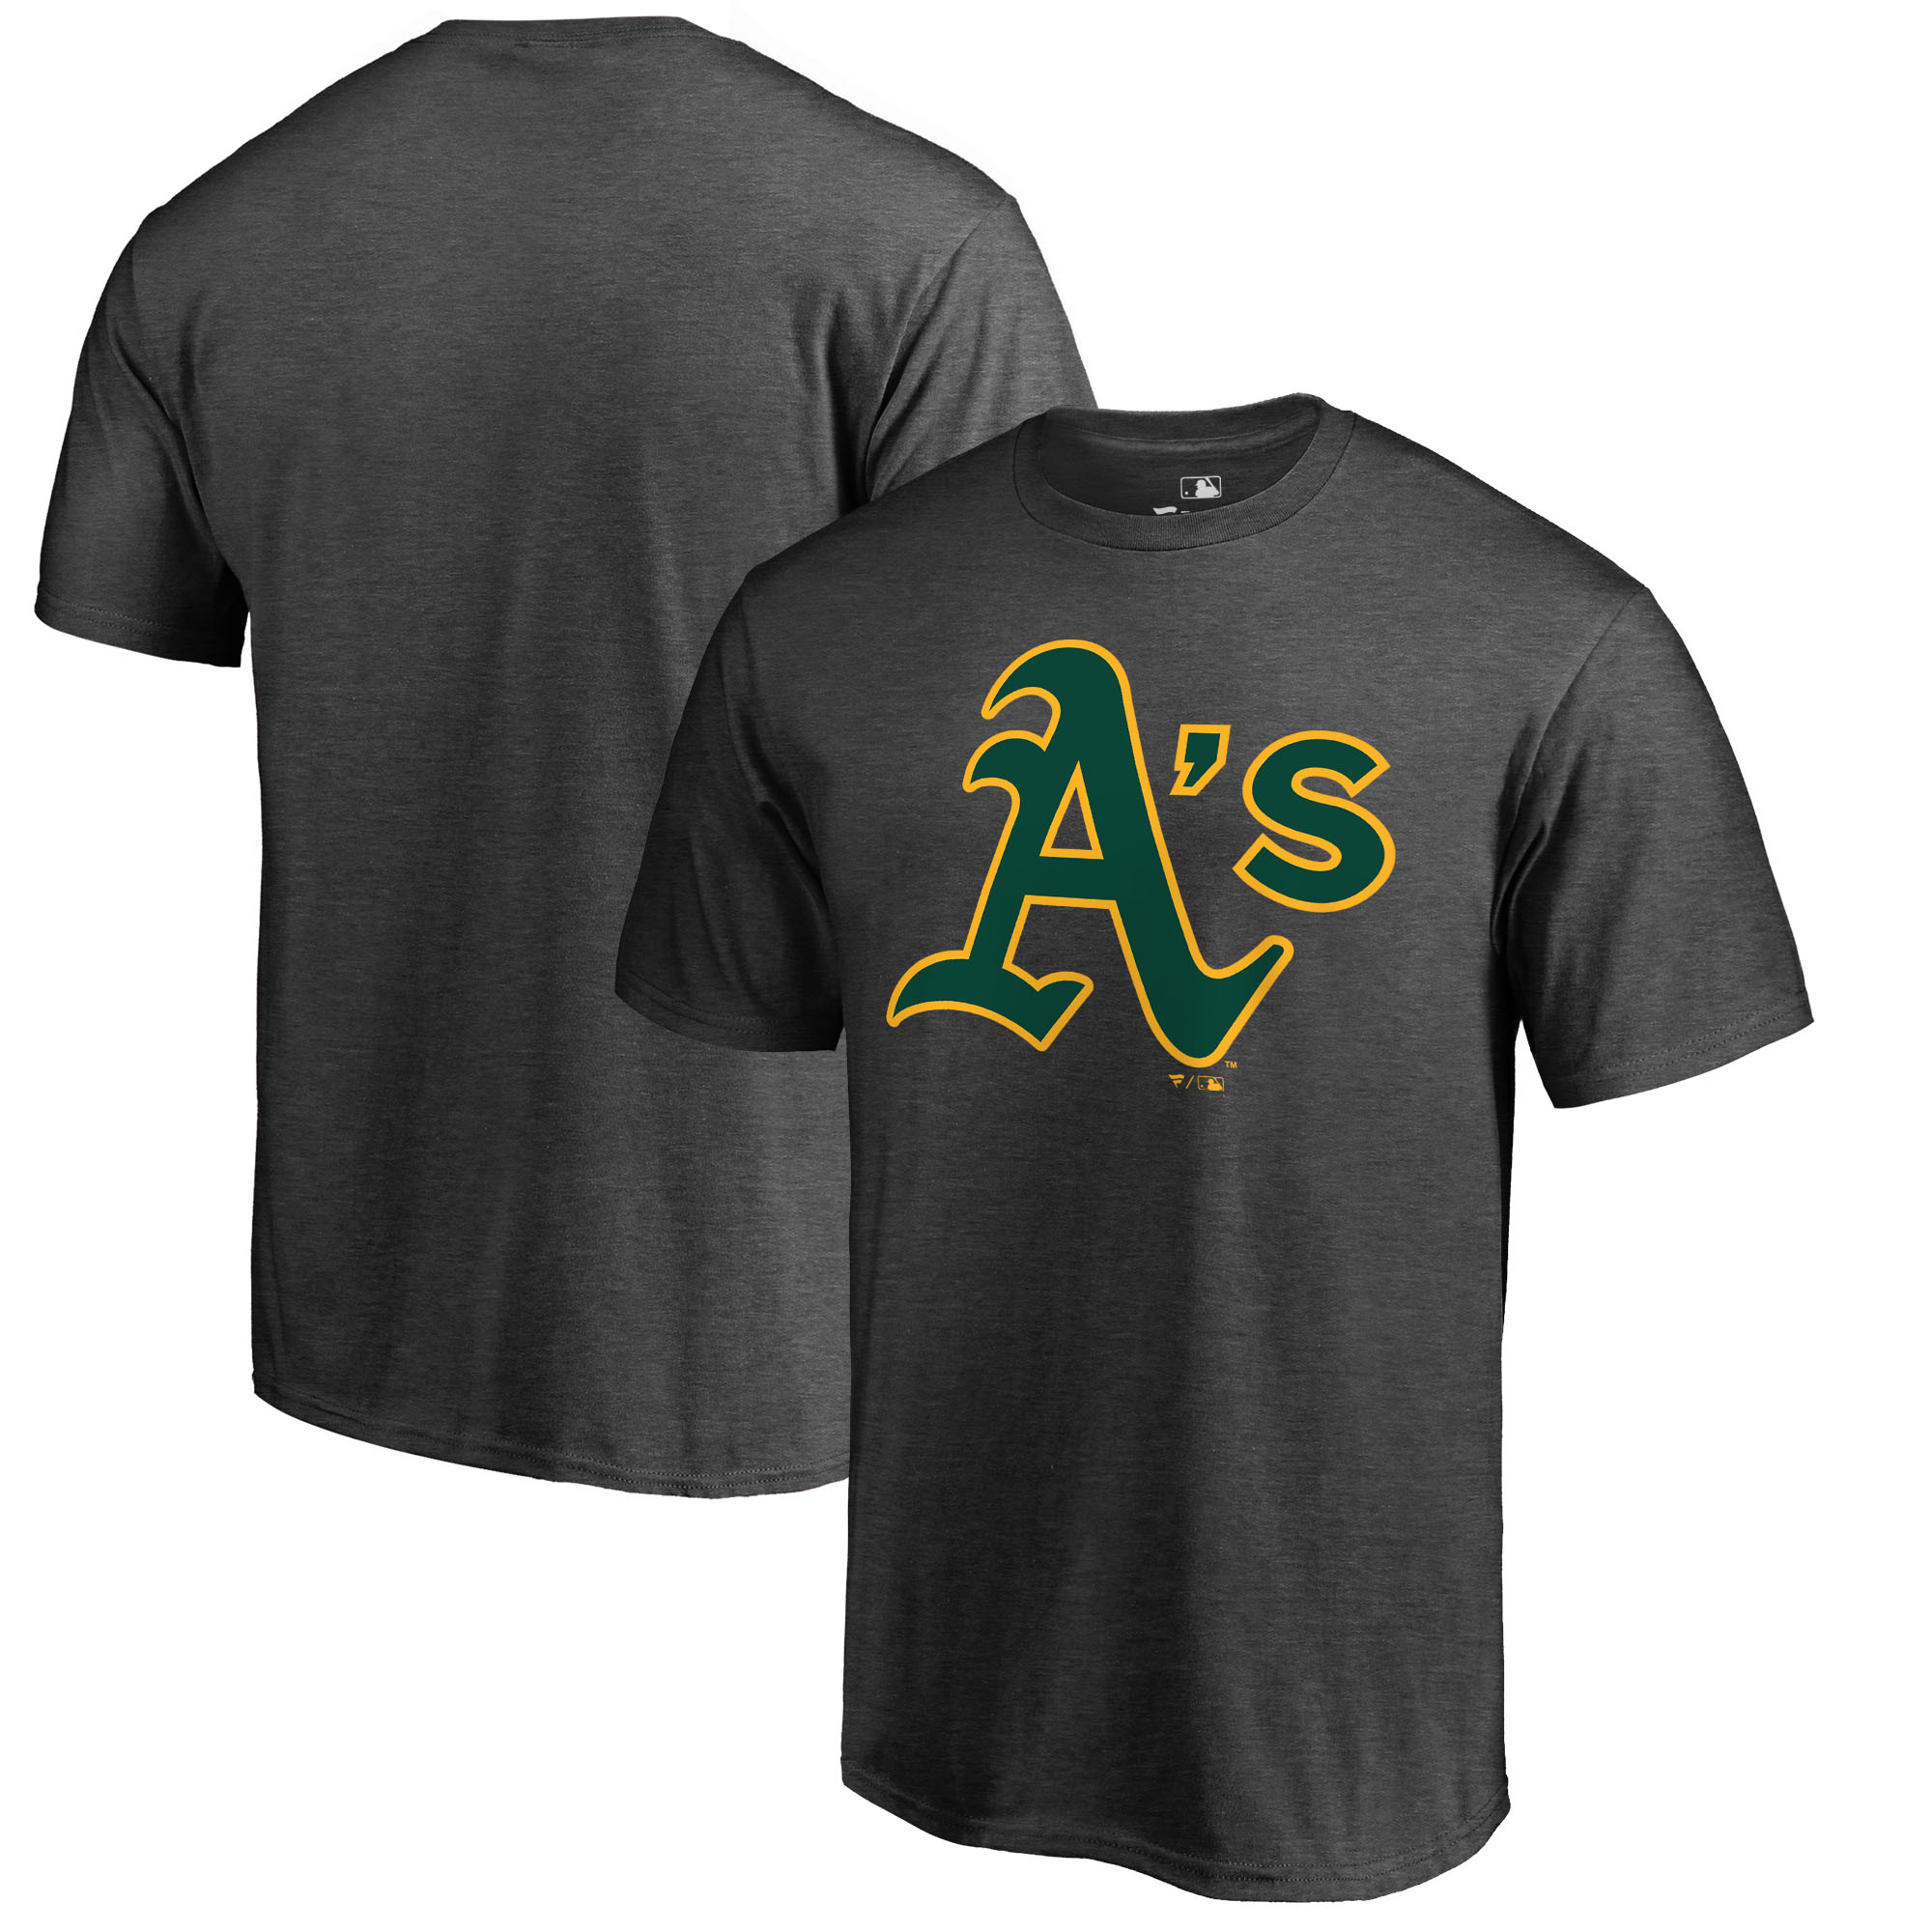 Oakland Athletics Fanatics Branded Big & Tall Primary Logo T-Shirt - Heathered Charcoal